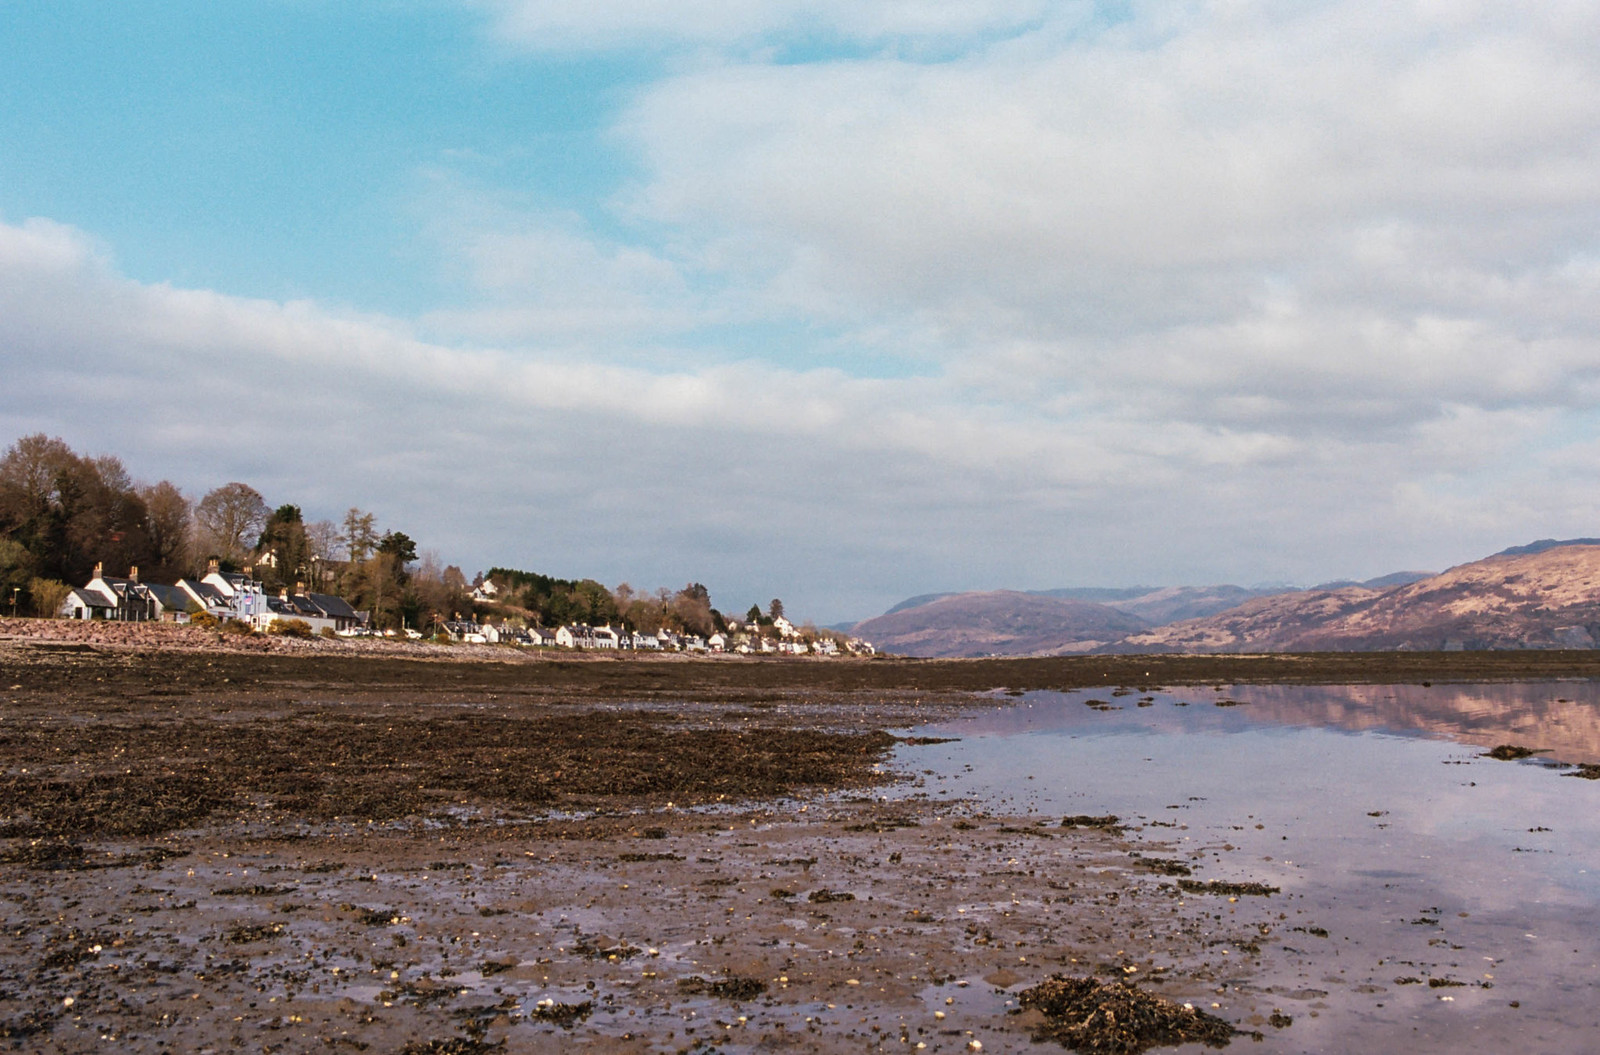 Lochcarron, west Scotland taken on Olympus OM10.